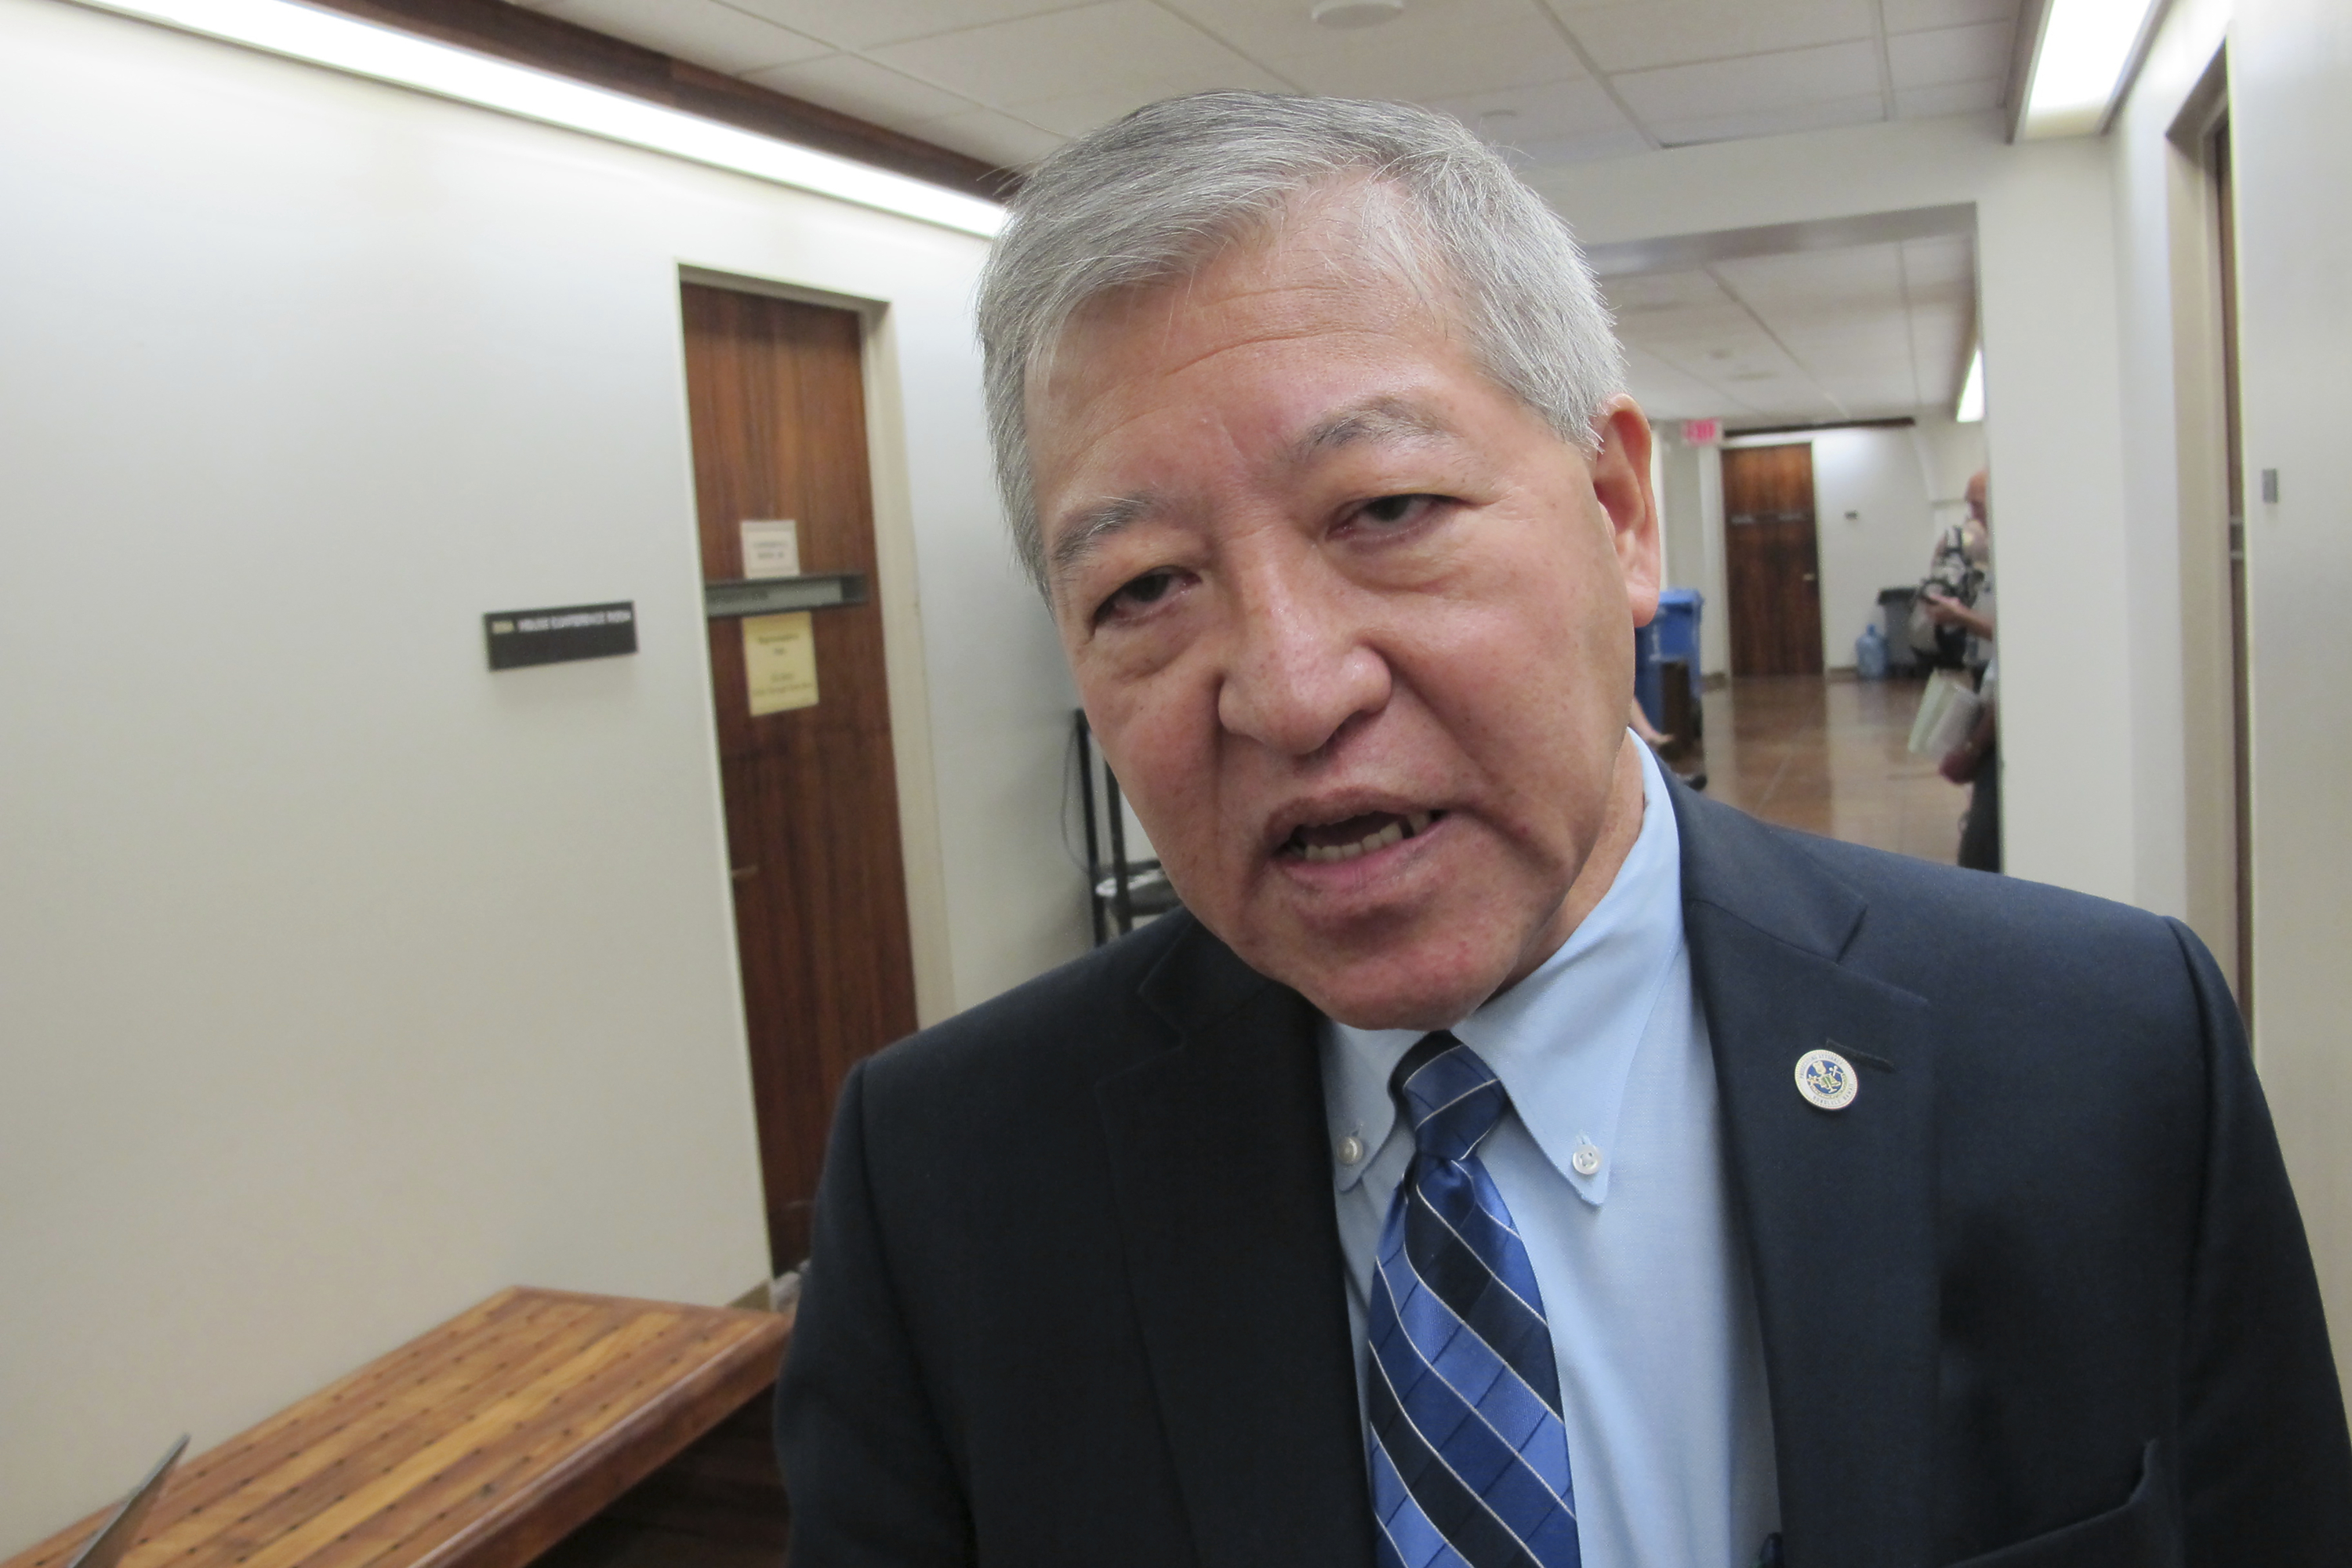 FILE - In this March 2, 2016, file photo, Honolulu's top prosecutor Keith Kaneshiro talks to The Associated Press in Honolulu. Hawaii Attorney General Clare Connors asked the state's highest court on Tuesday, Feb. 12, 2019, to immediately suspend Kaneshiro because he is the target of a federal investigation. (AP Photo/Cathy Bussewitz, File)